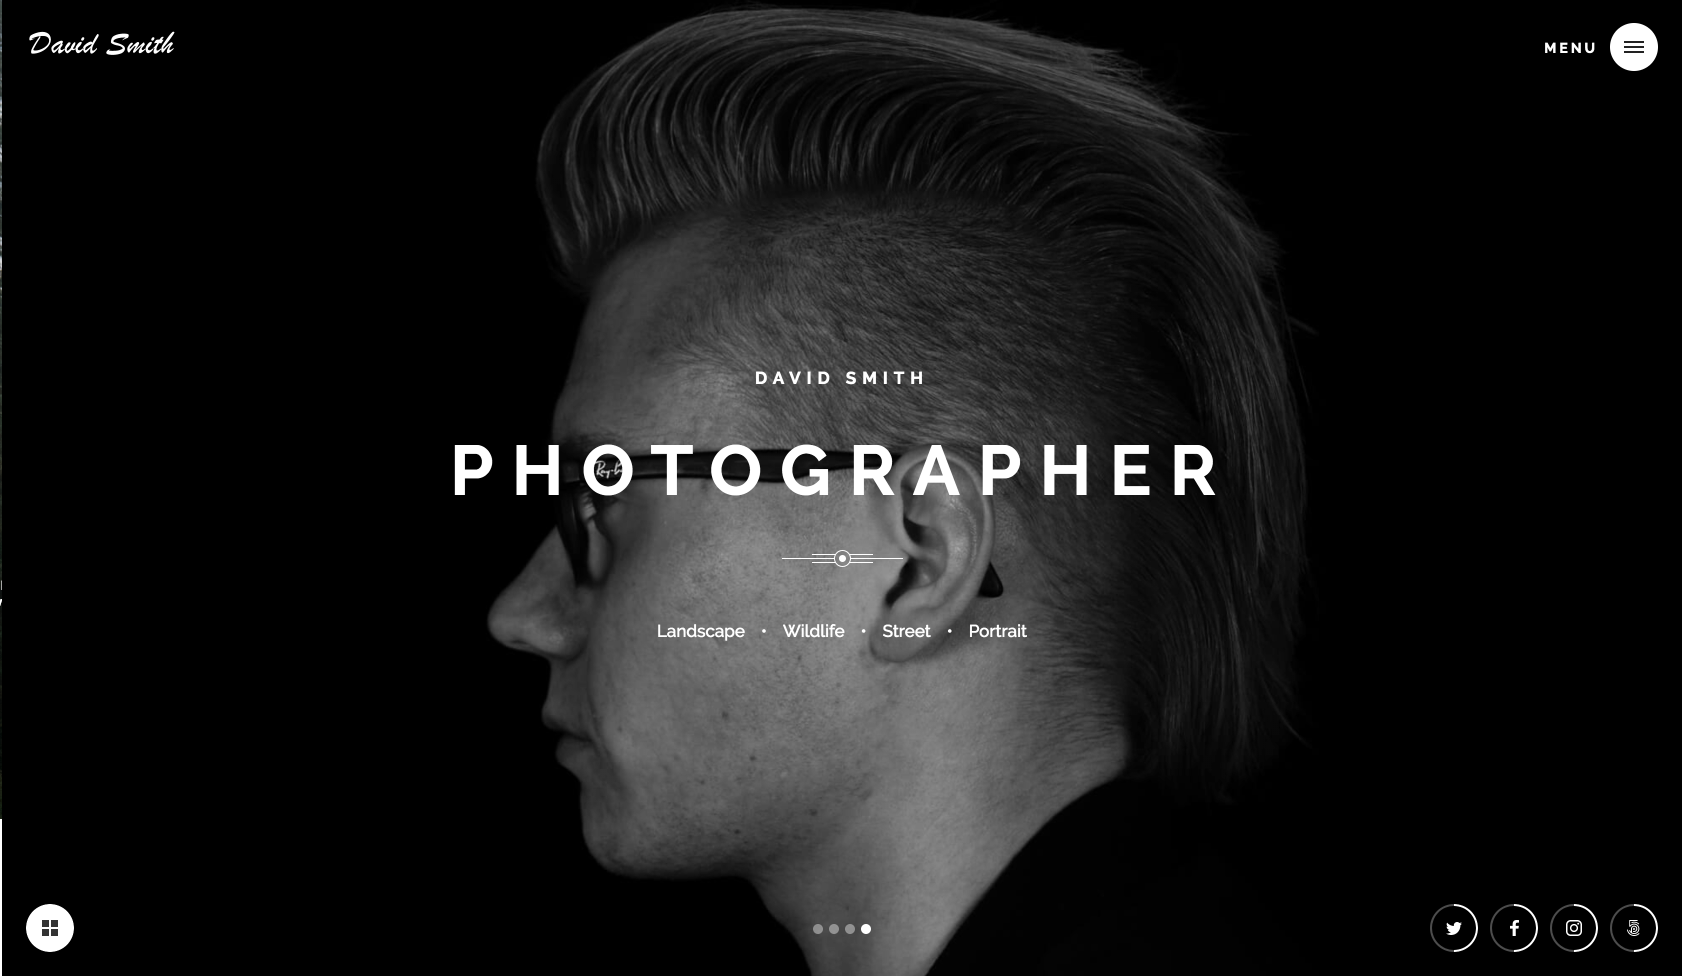 Homepage for Webflow template called Photographer.